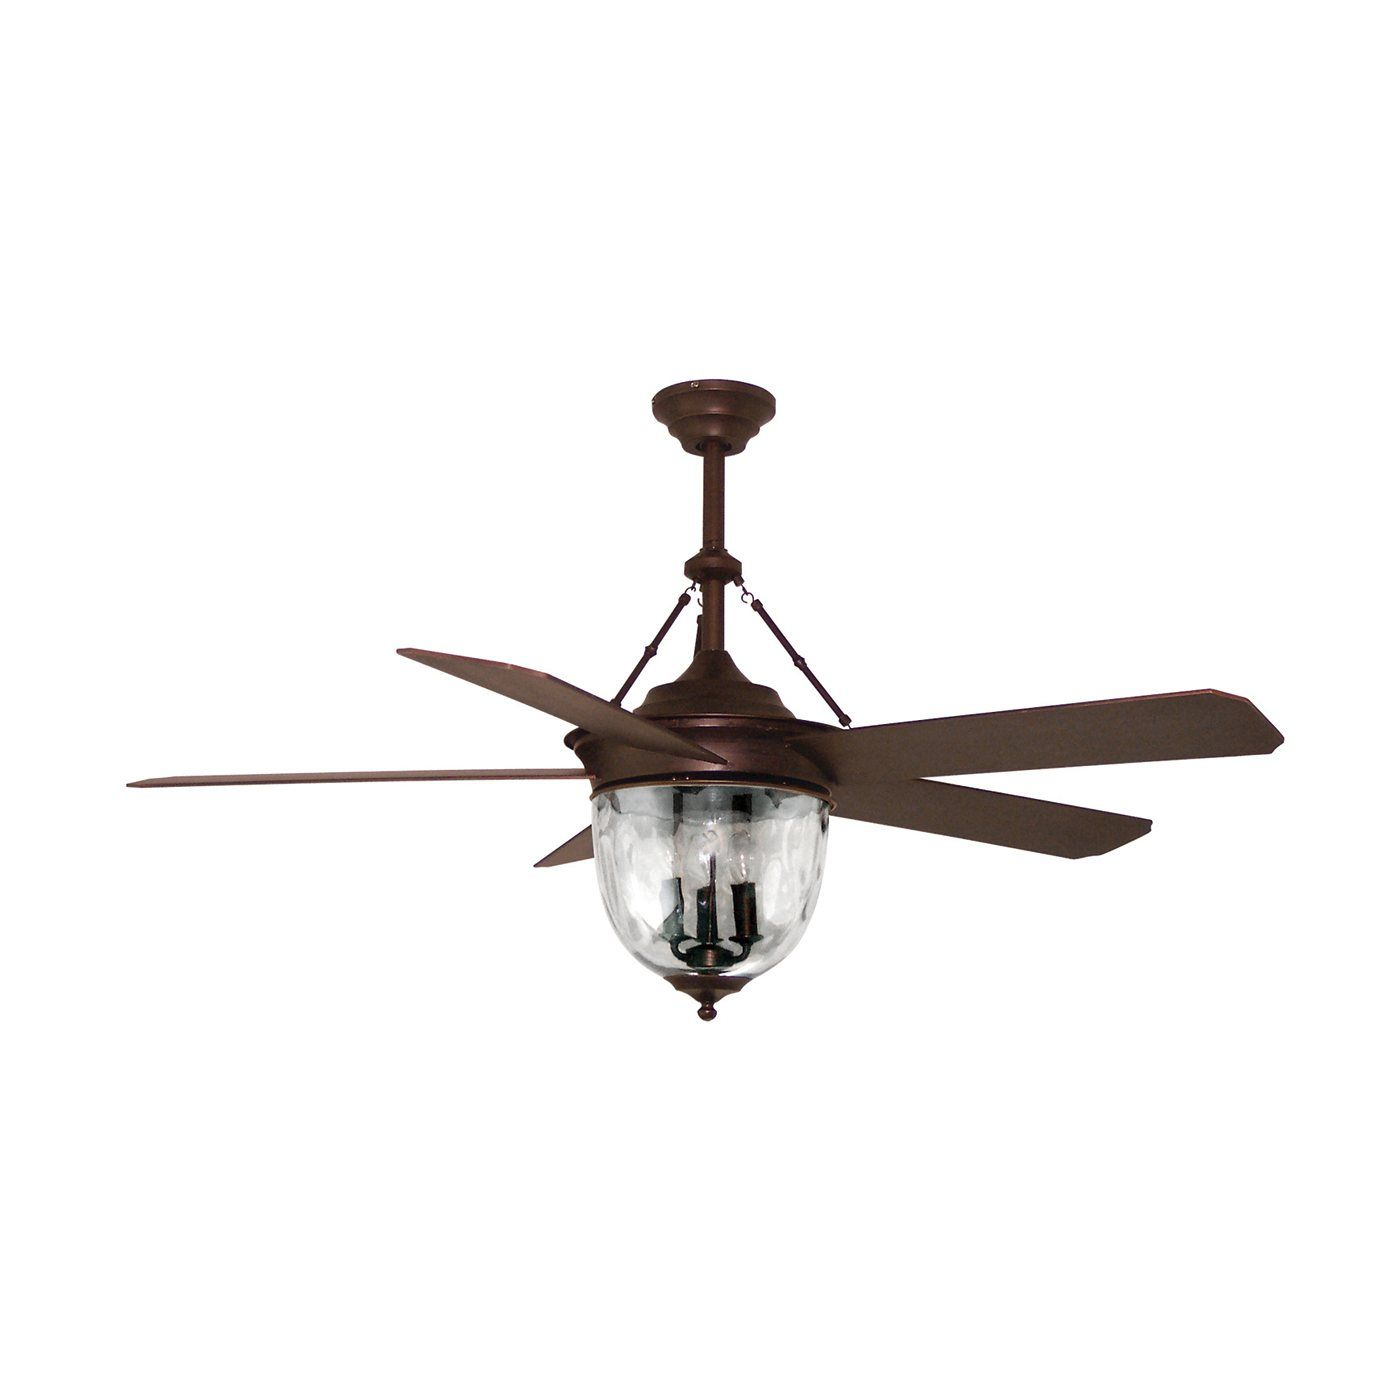 capitol prima in finish cfm low lighting shown brushed ceiling flush emerson mount item fan for snugger ceilings fans steel